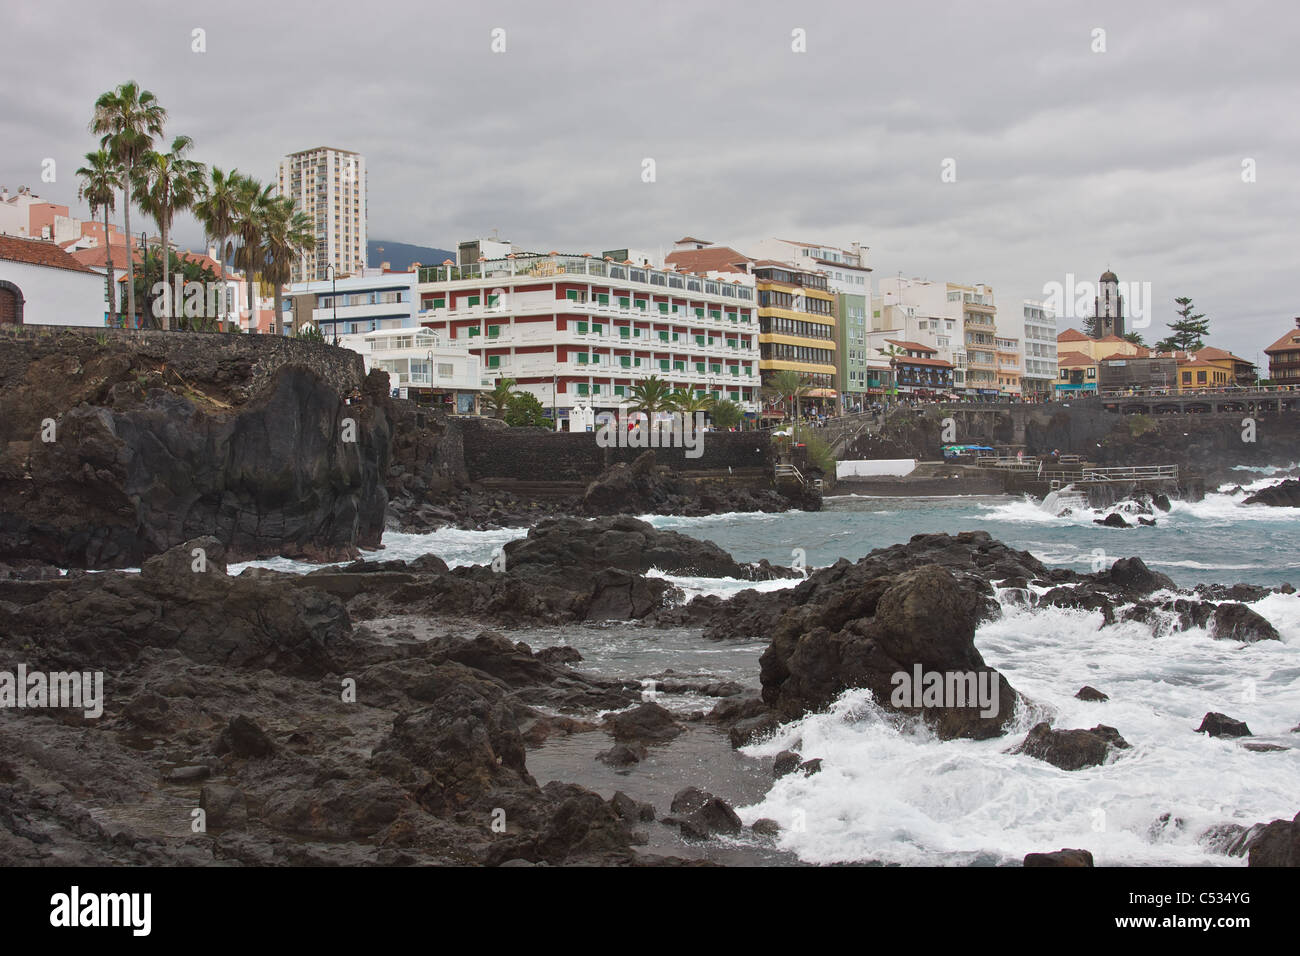 Volcanic coast of San Telmo in Puerto de la Cruz (Spain) Stock Photo